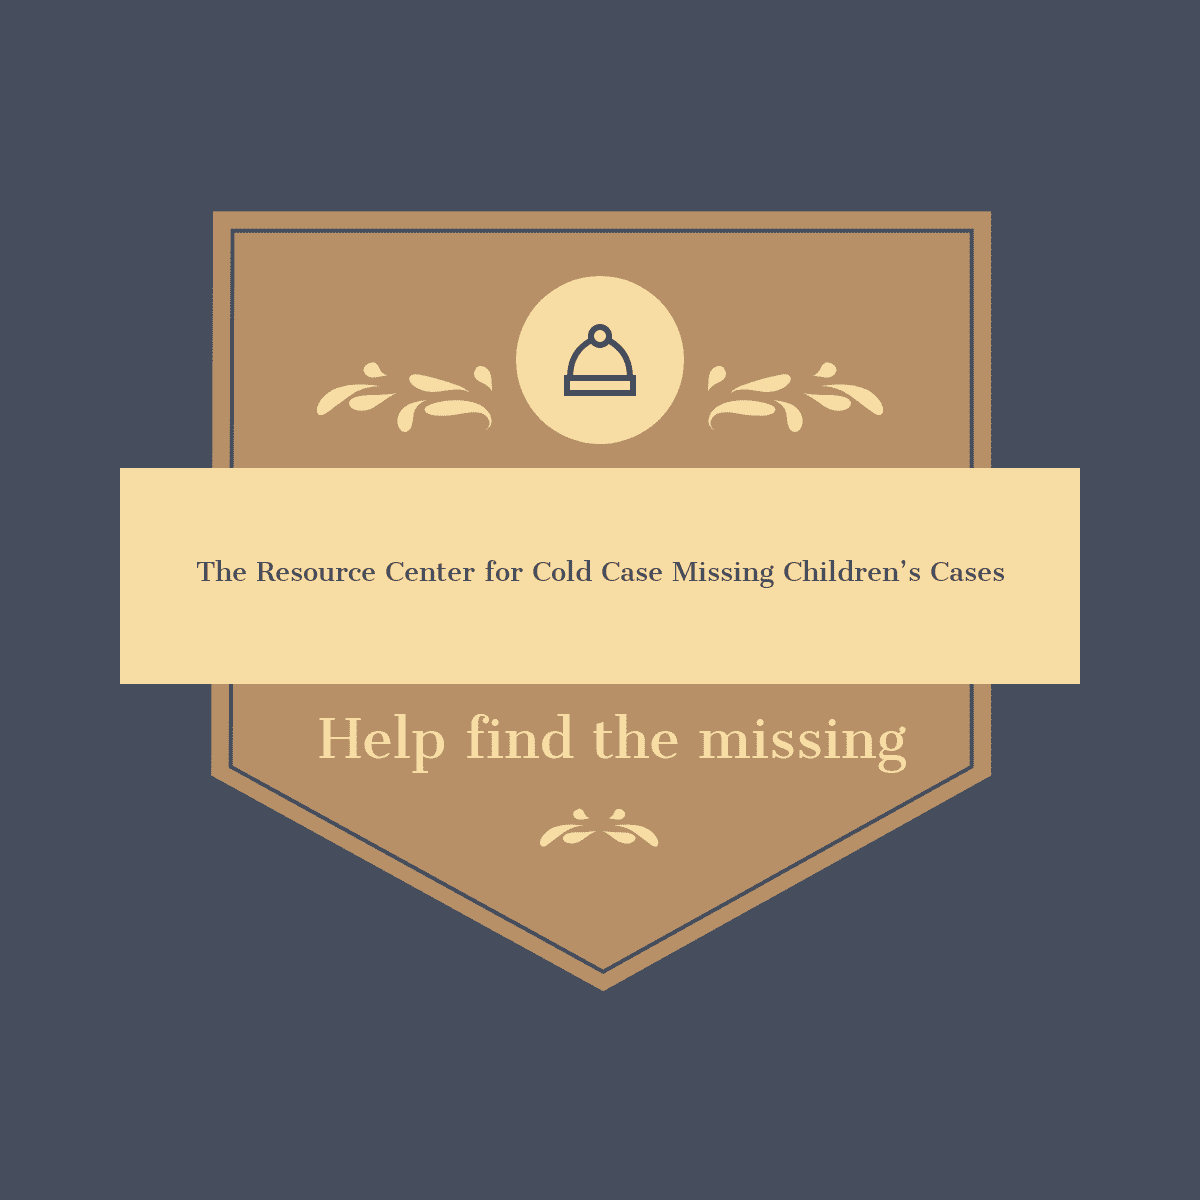 The Resource Center For Cold Case Missing Children's Cases